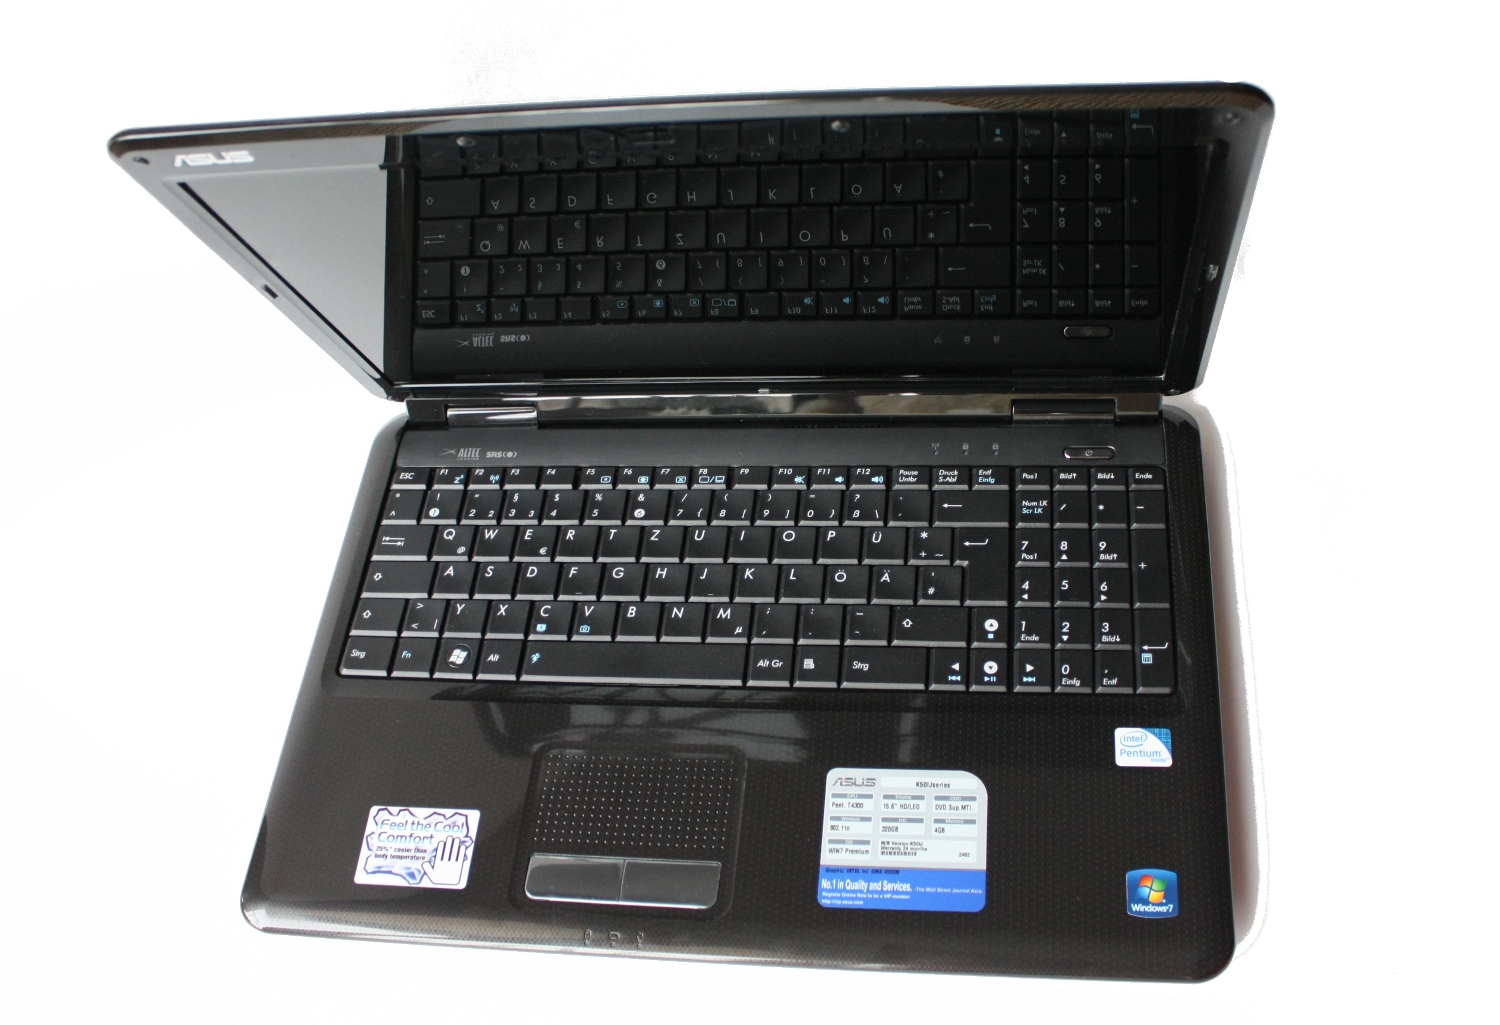 Asus k50ij series notebookcheck external reviews asus k50ij sx greentooth Choice Image